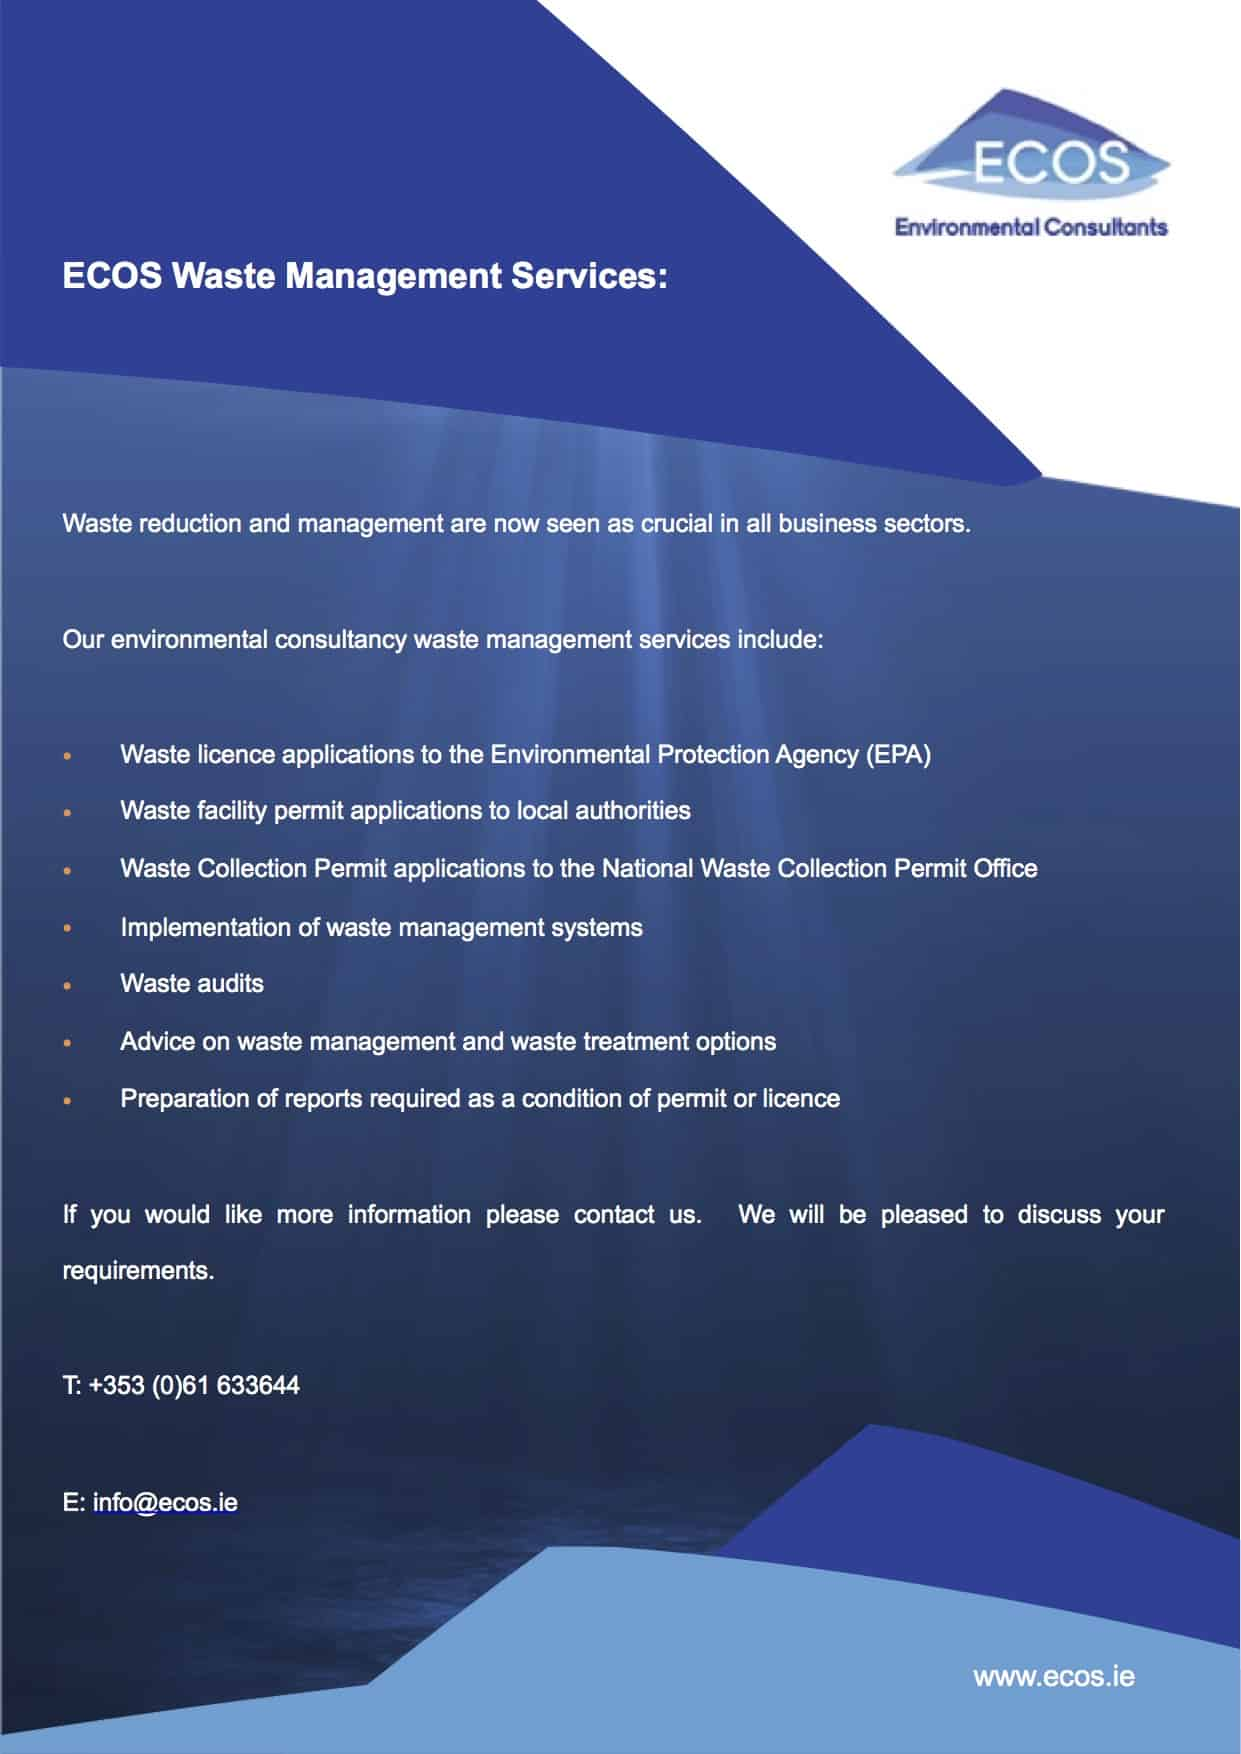 ECOS Waste Management Services